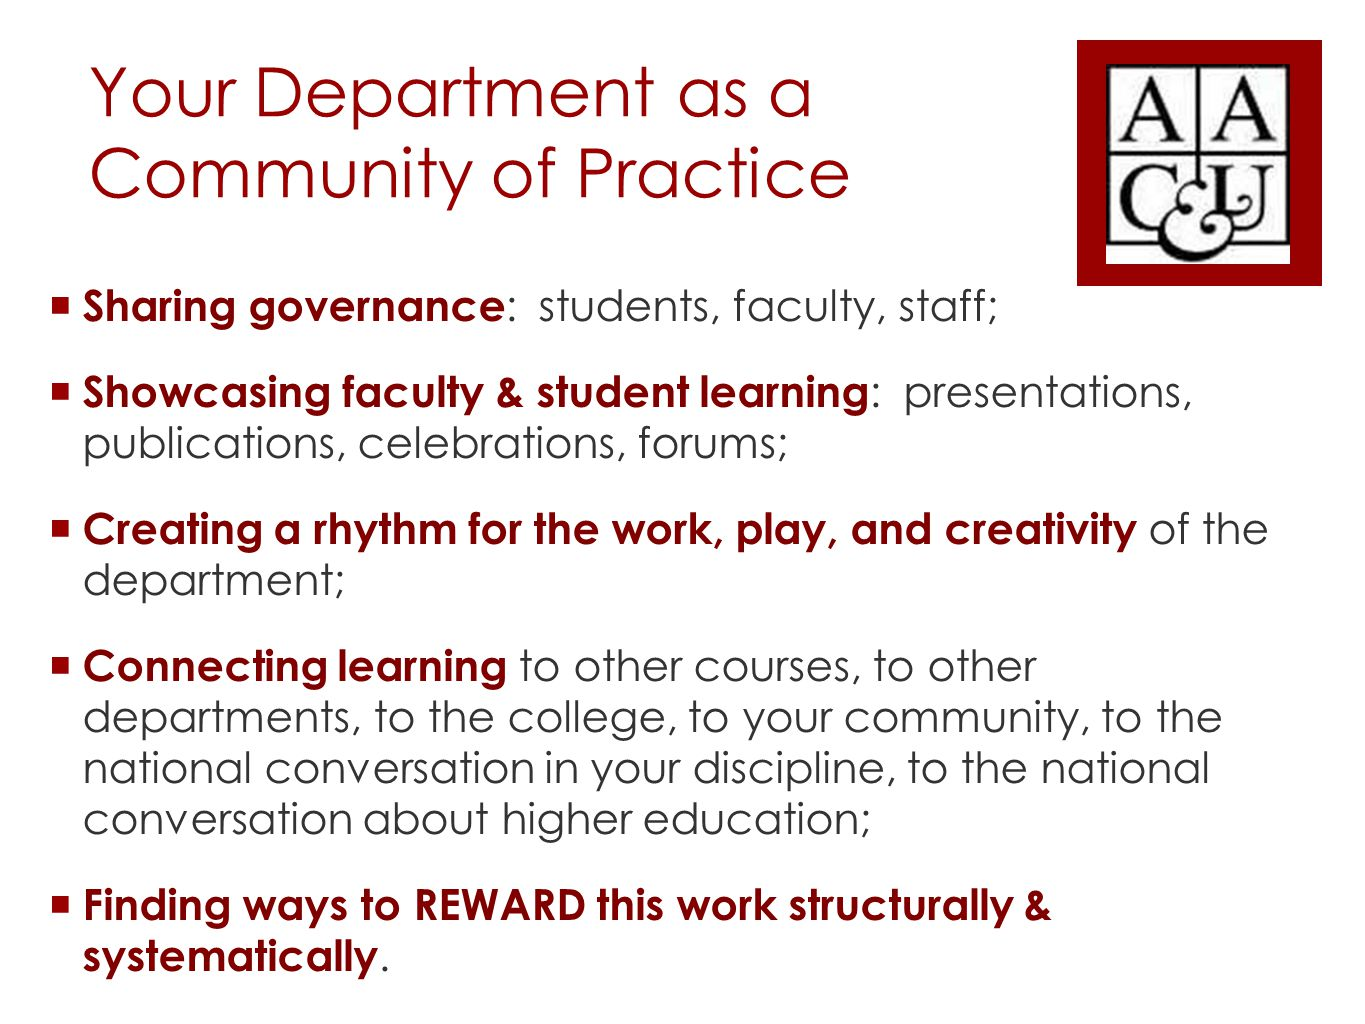 Your Department as a Community of Practice  Sharing governance : students, faculty, staff;  Showcasing faculty & student learning : presentations, publications, celebrations, forums;  Creating a rhythm for the work, play, and creativity of the department;  Connecting learning to other courses, to other departments, to the college, to your community, to the national conversation in your discipline, to the national conversation about higher education;  Finding ways to REWARD this work structurally & systematically.